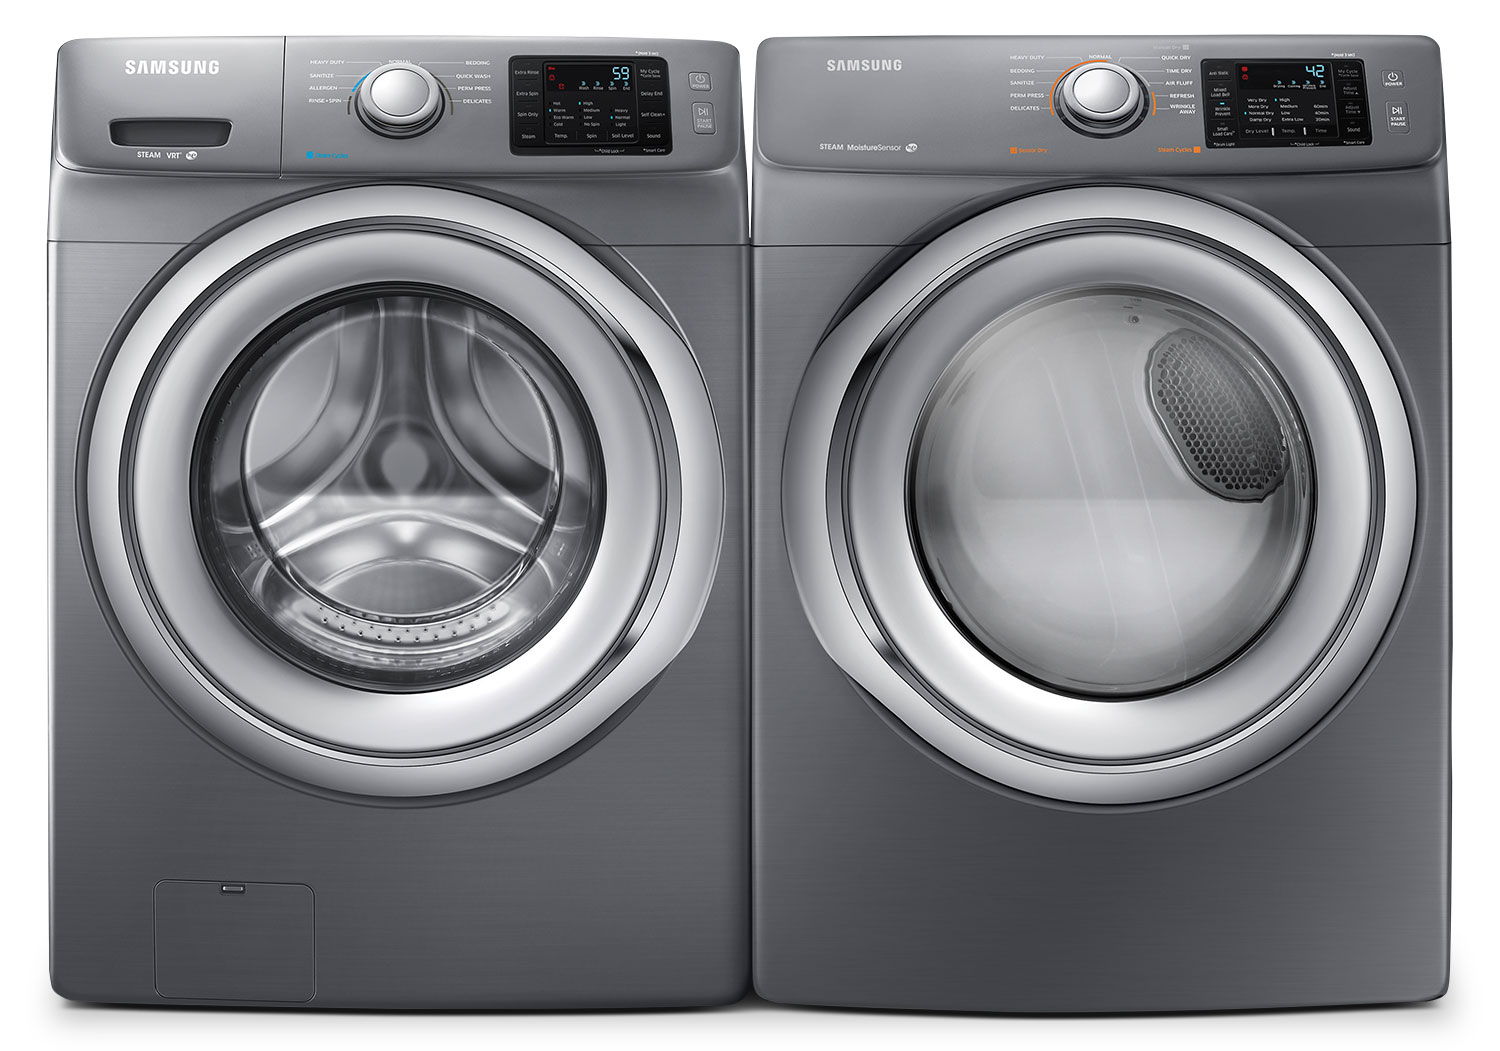 Washers and Dryers - Samsung 4.8 Cu. Ft. Front-Load Washer and 7.5 Cu. Ft. Gas Dryer - Platinum